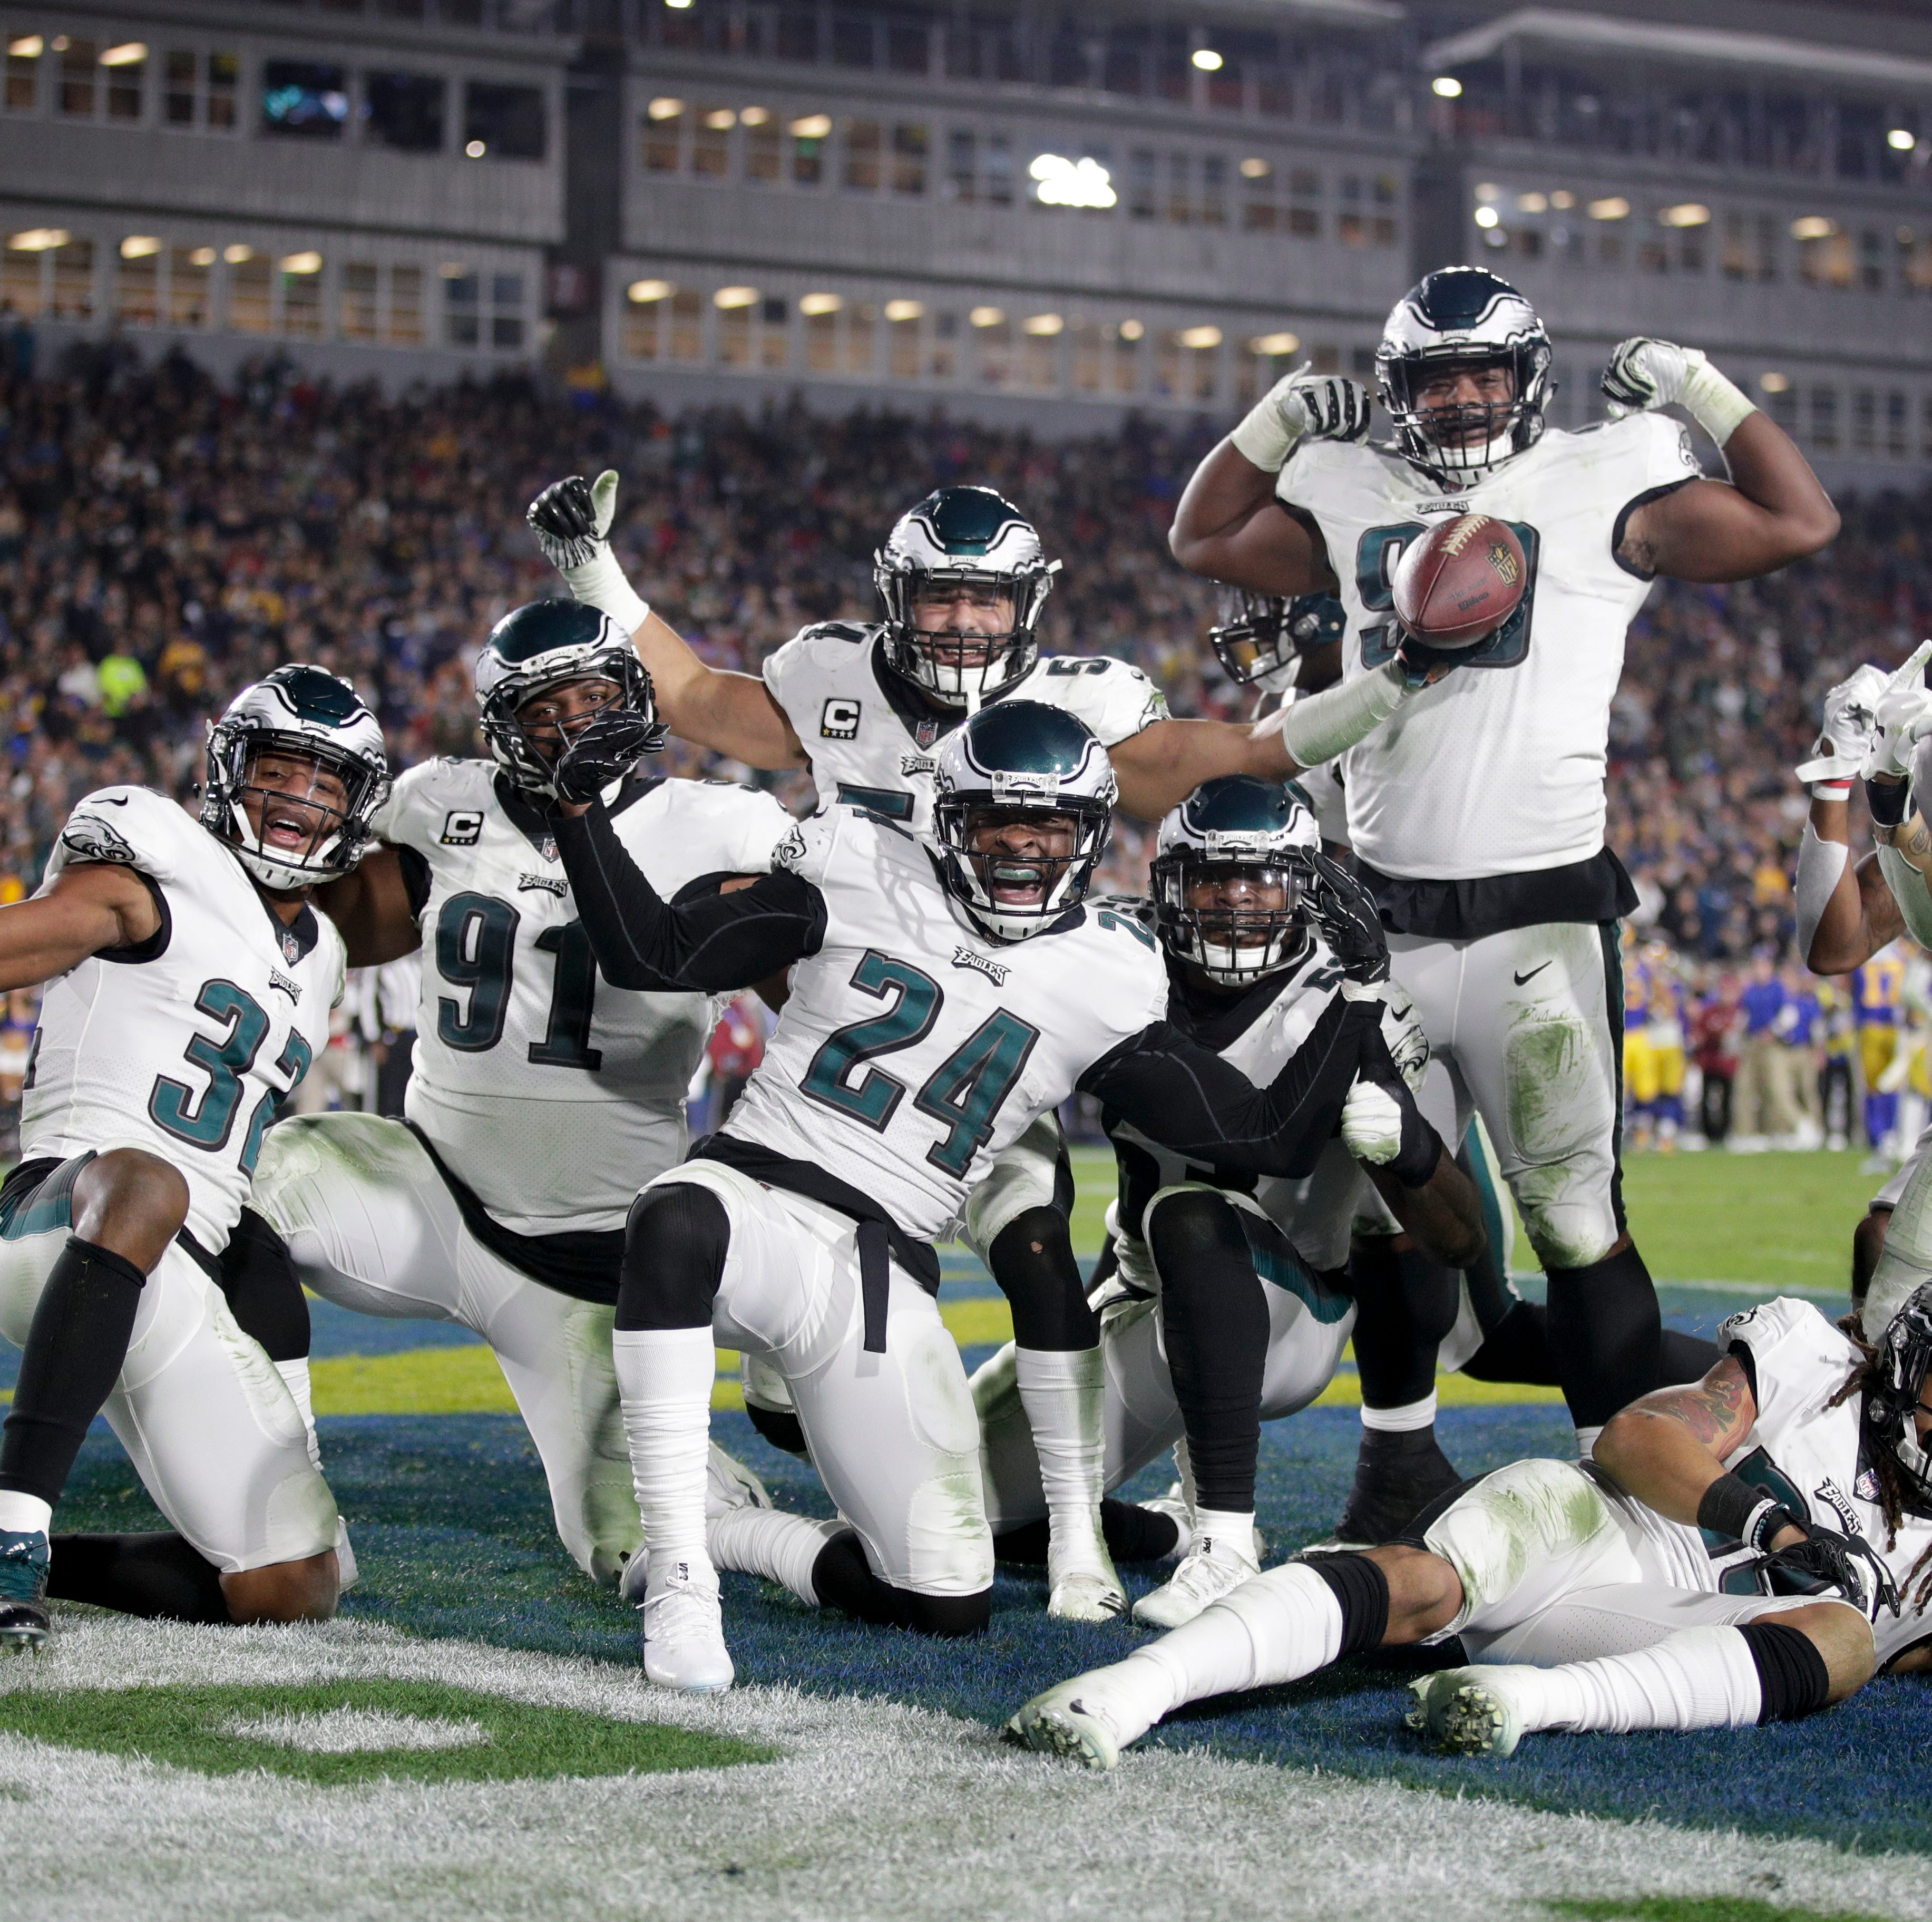 Foles, filling in for Wentz, leads Eagles past Rams to keep playoff hopes alive